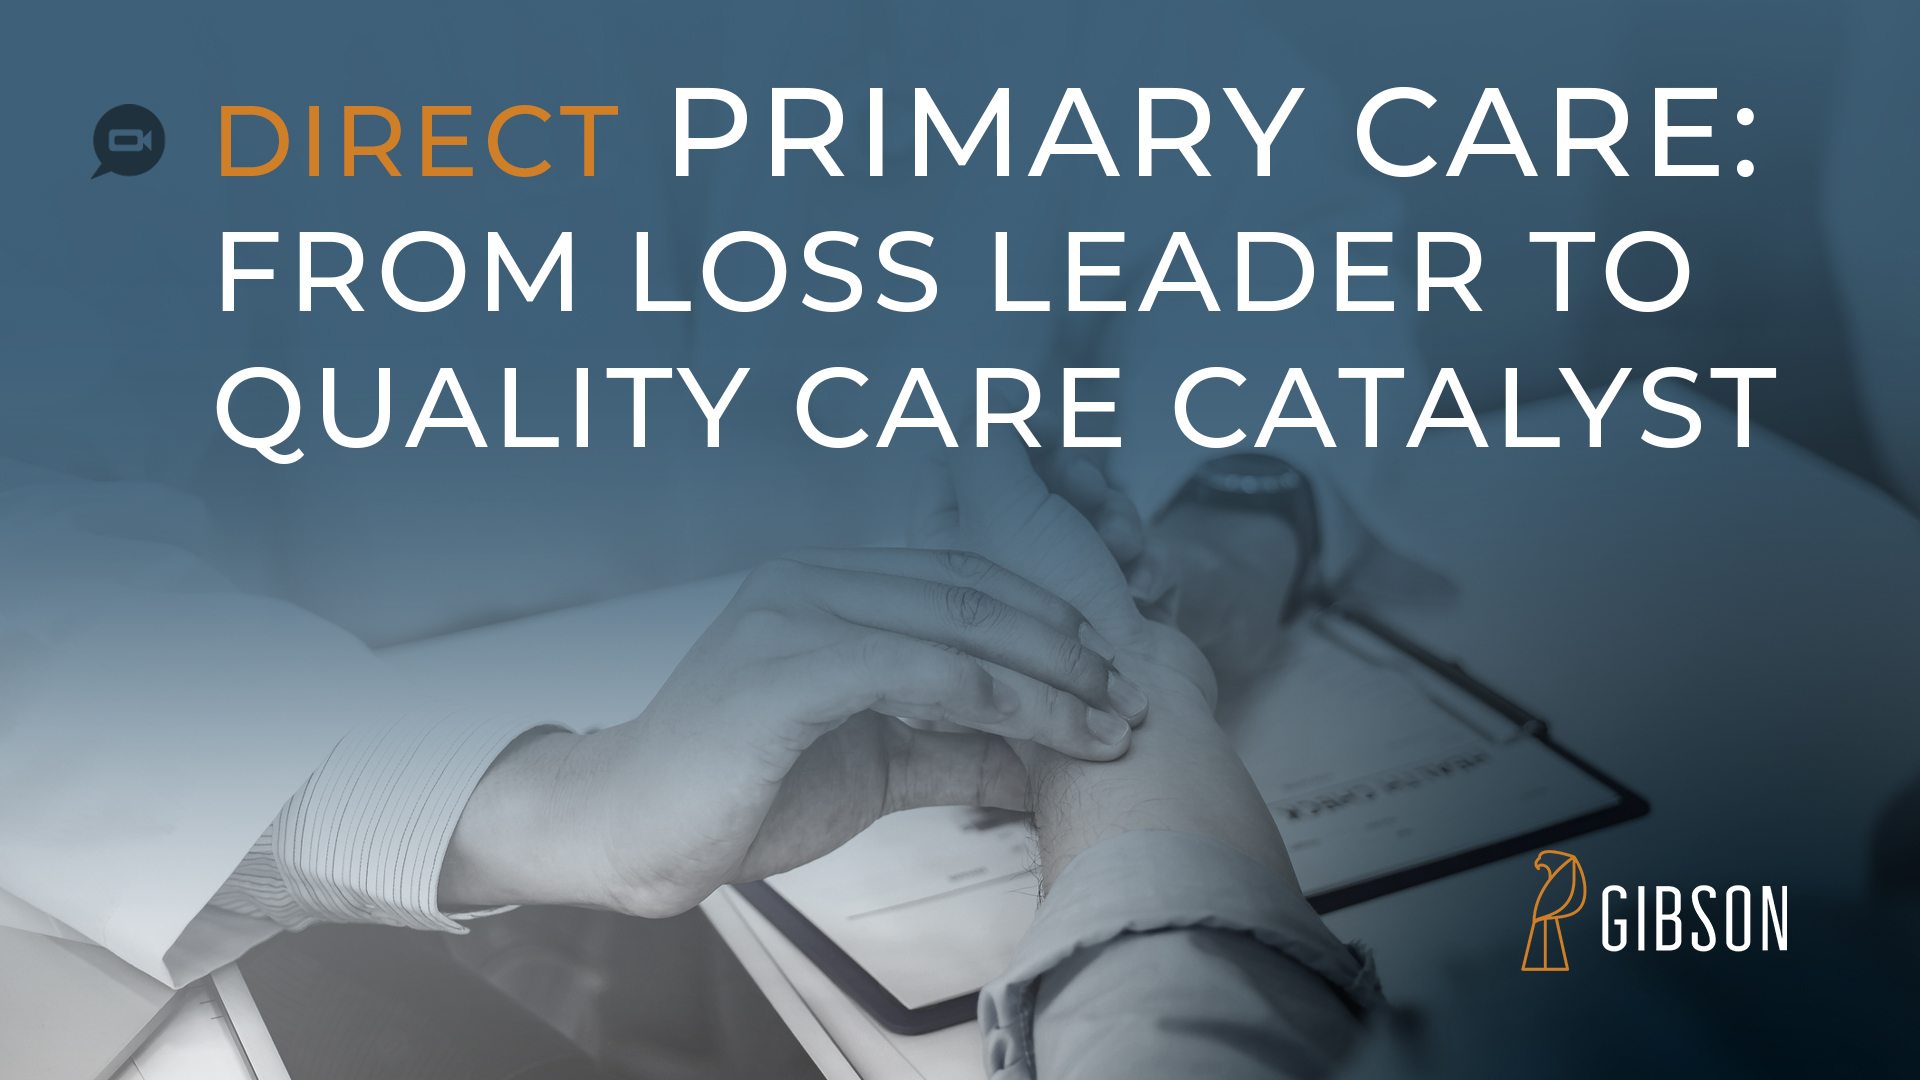 Direct Primary Care From Loss Leader to Quality Care Catalyst